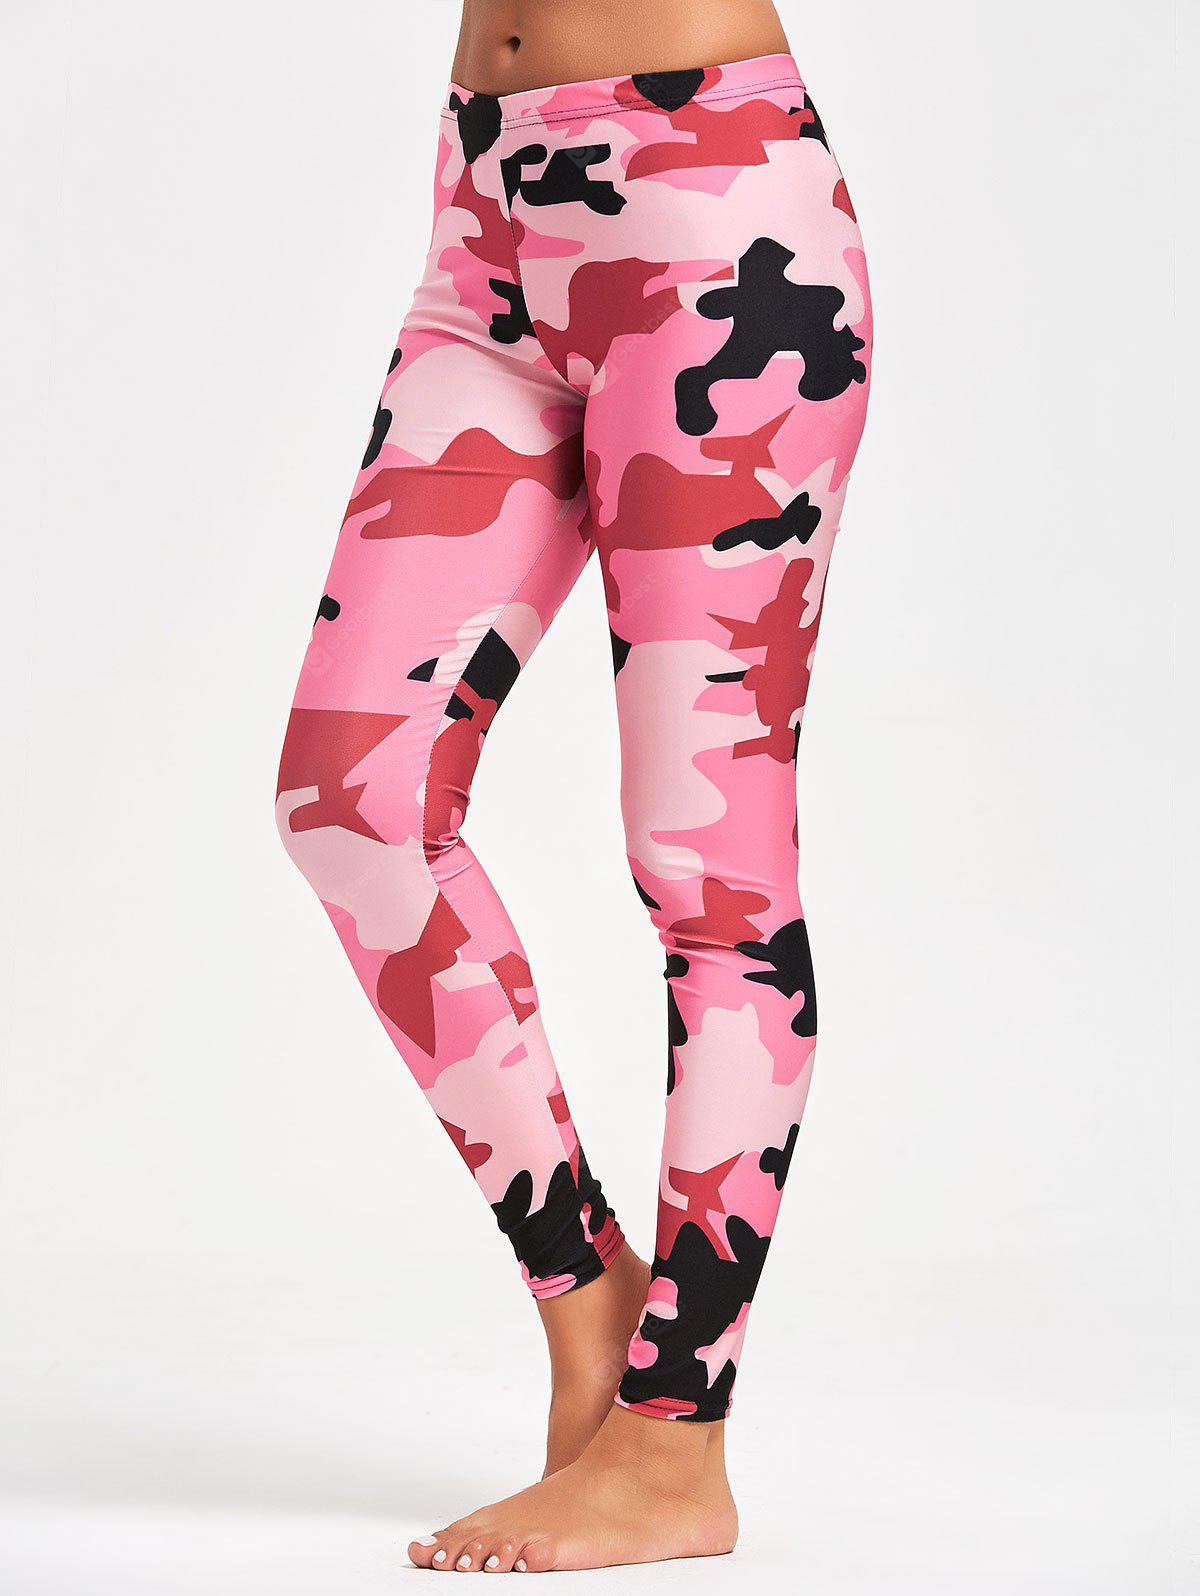 Camo Pattern Workout Tights